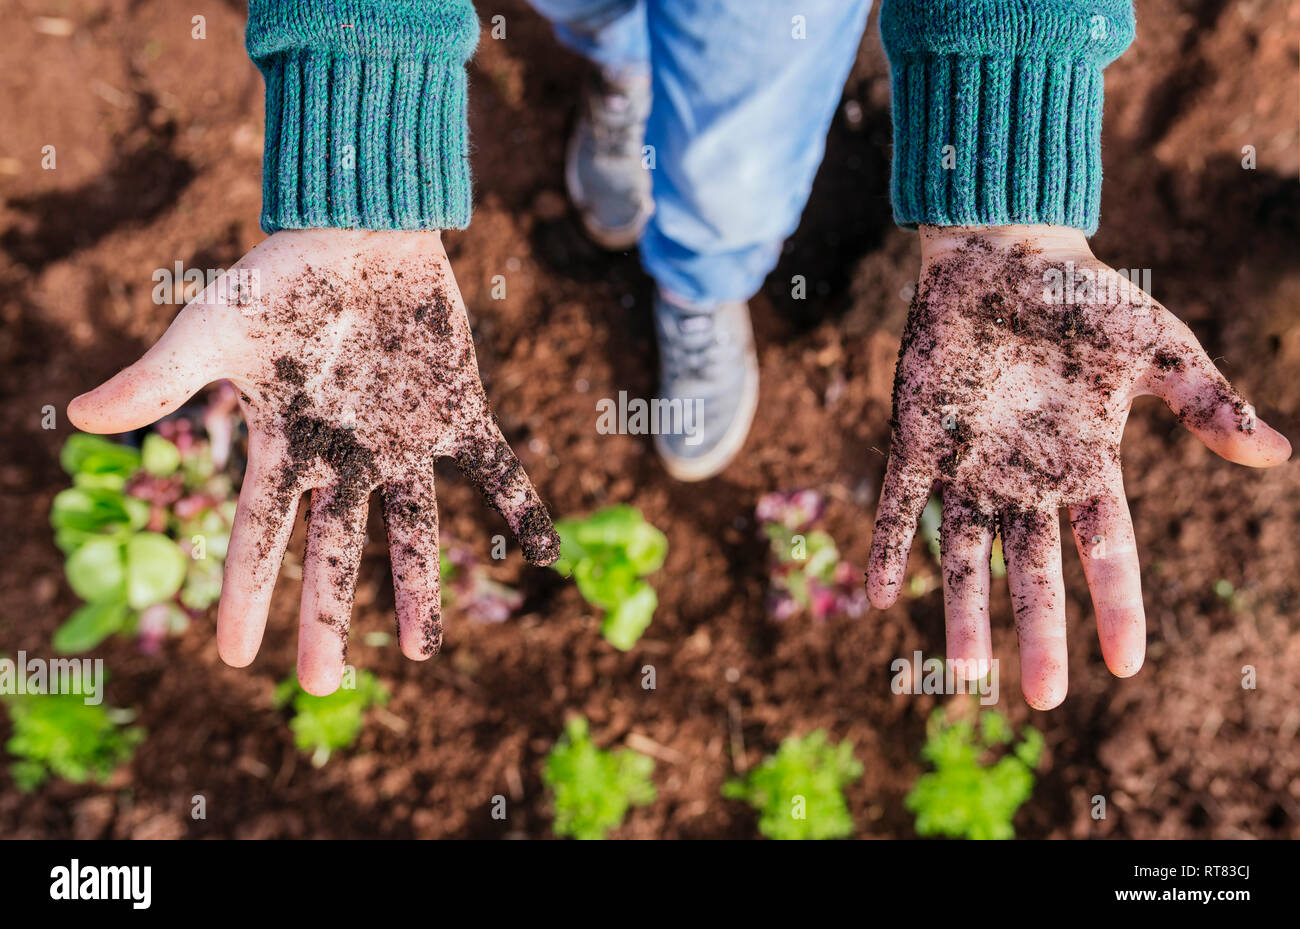 Boy showing messy hands, full of soil, after planting seedlings - Stock Image